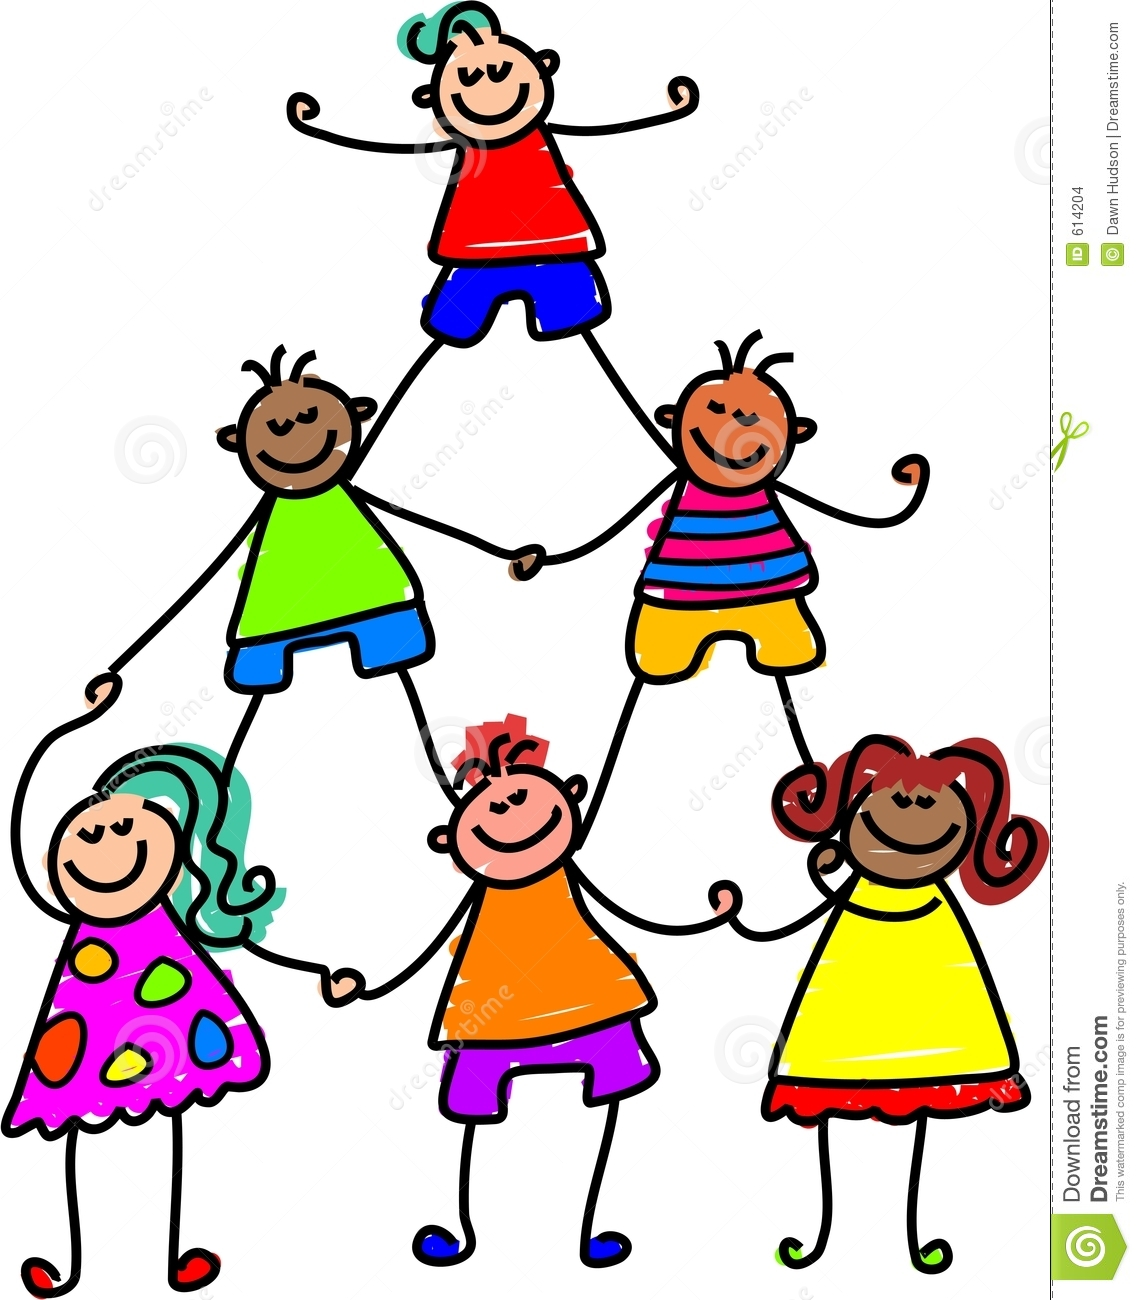 Child clipart working together Clipart kids%20teamwork%20clipart Clipart Working Free